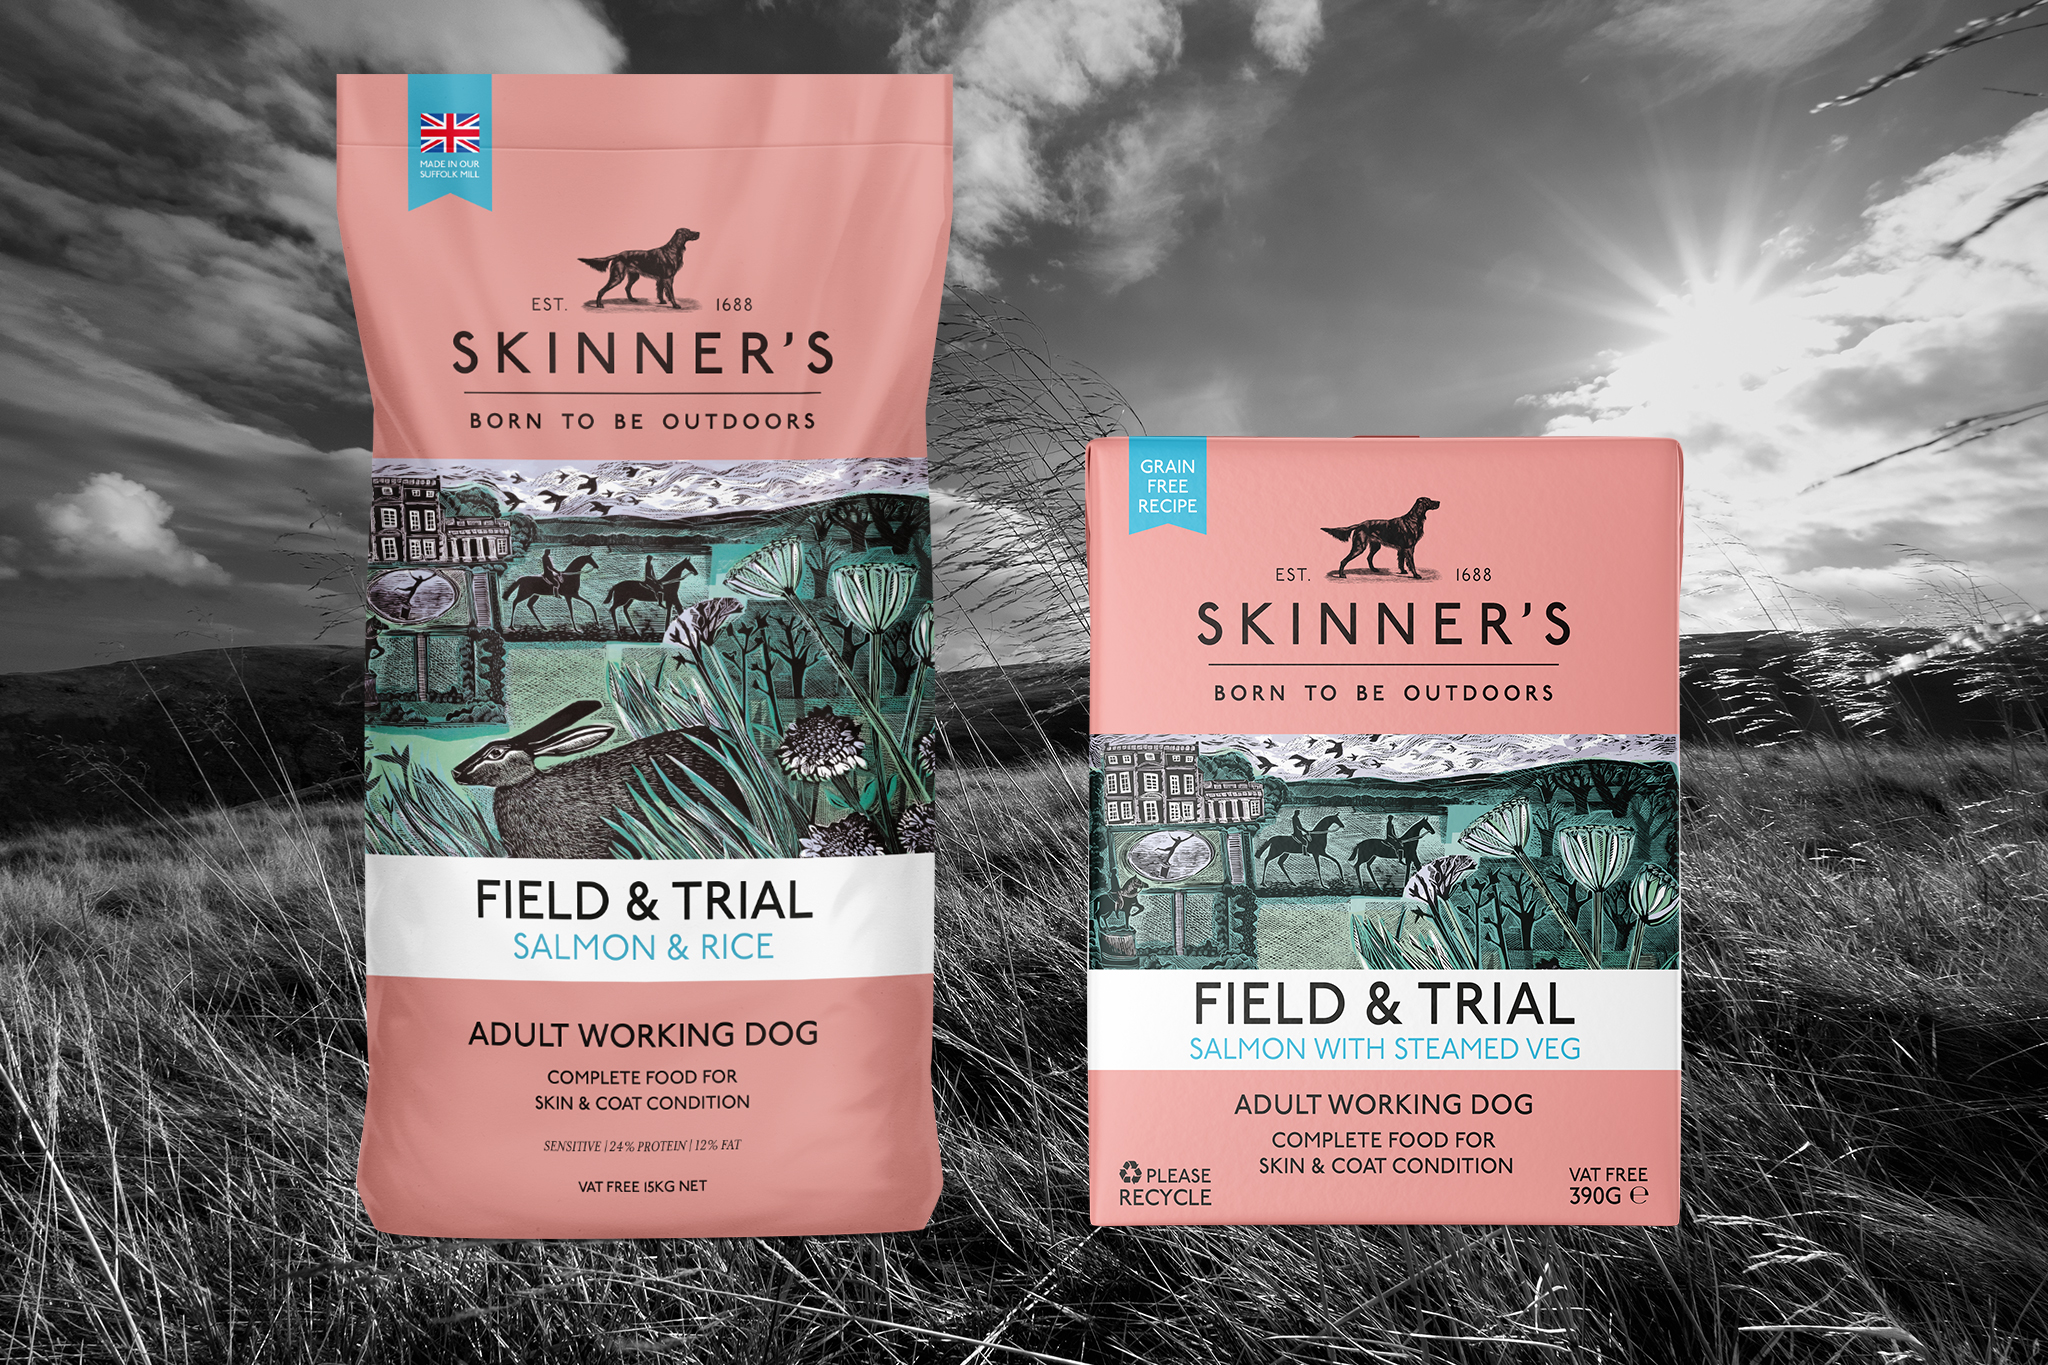 How to feed wet and dry dog food together